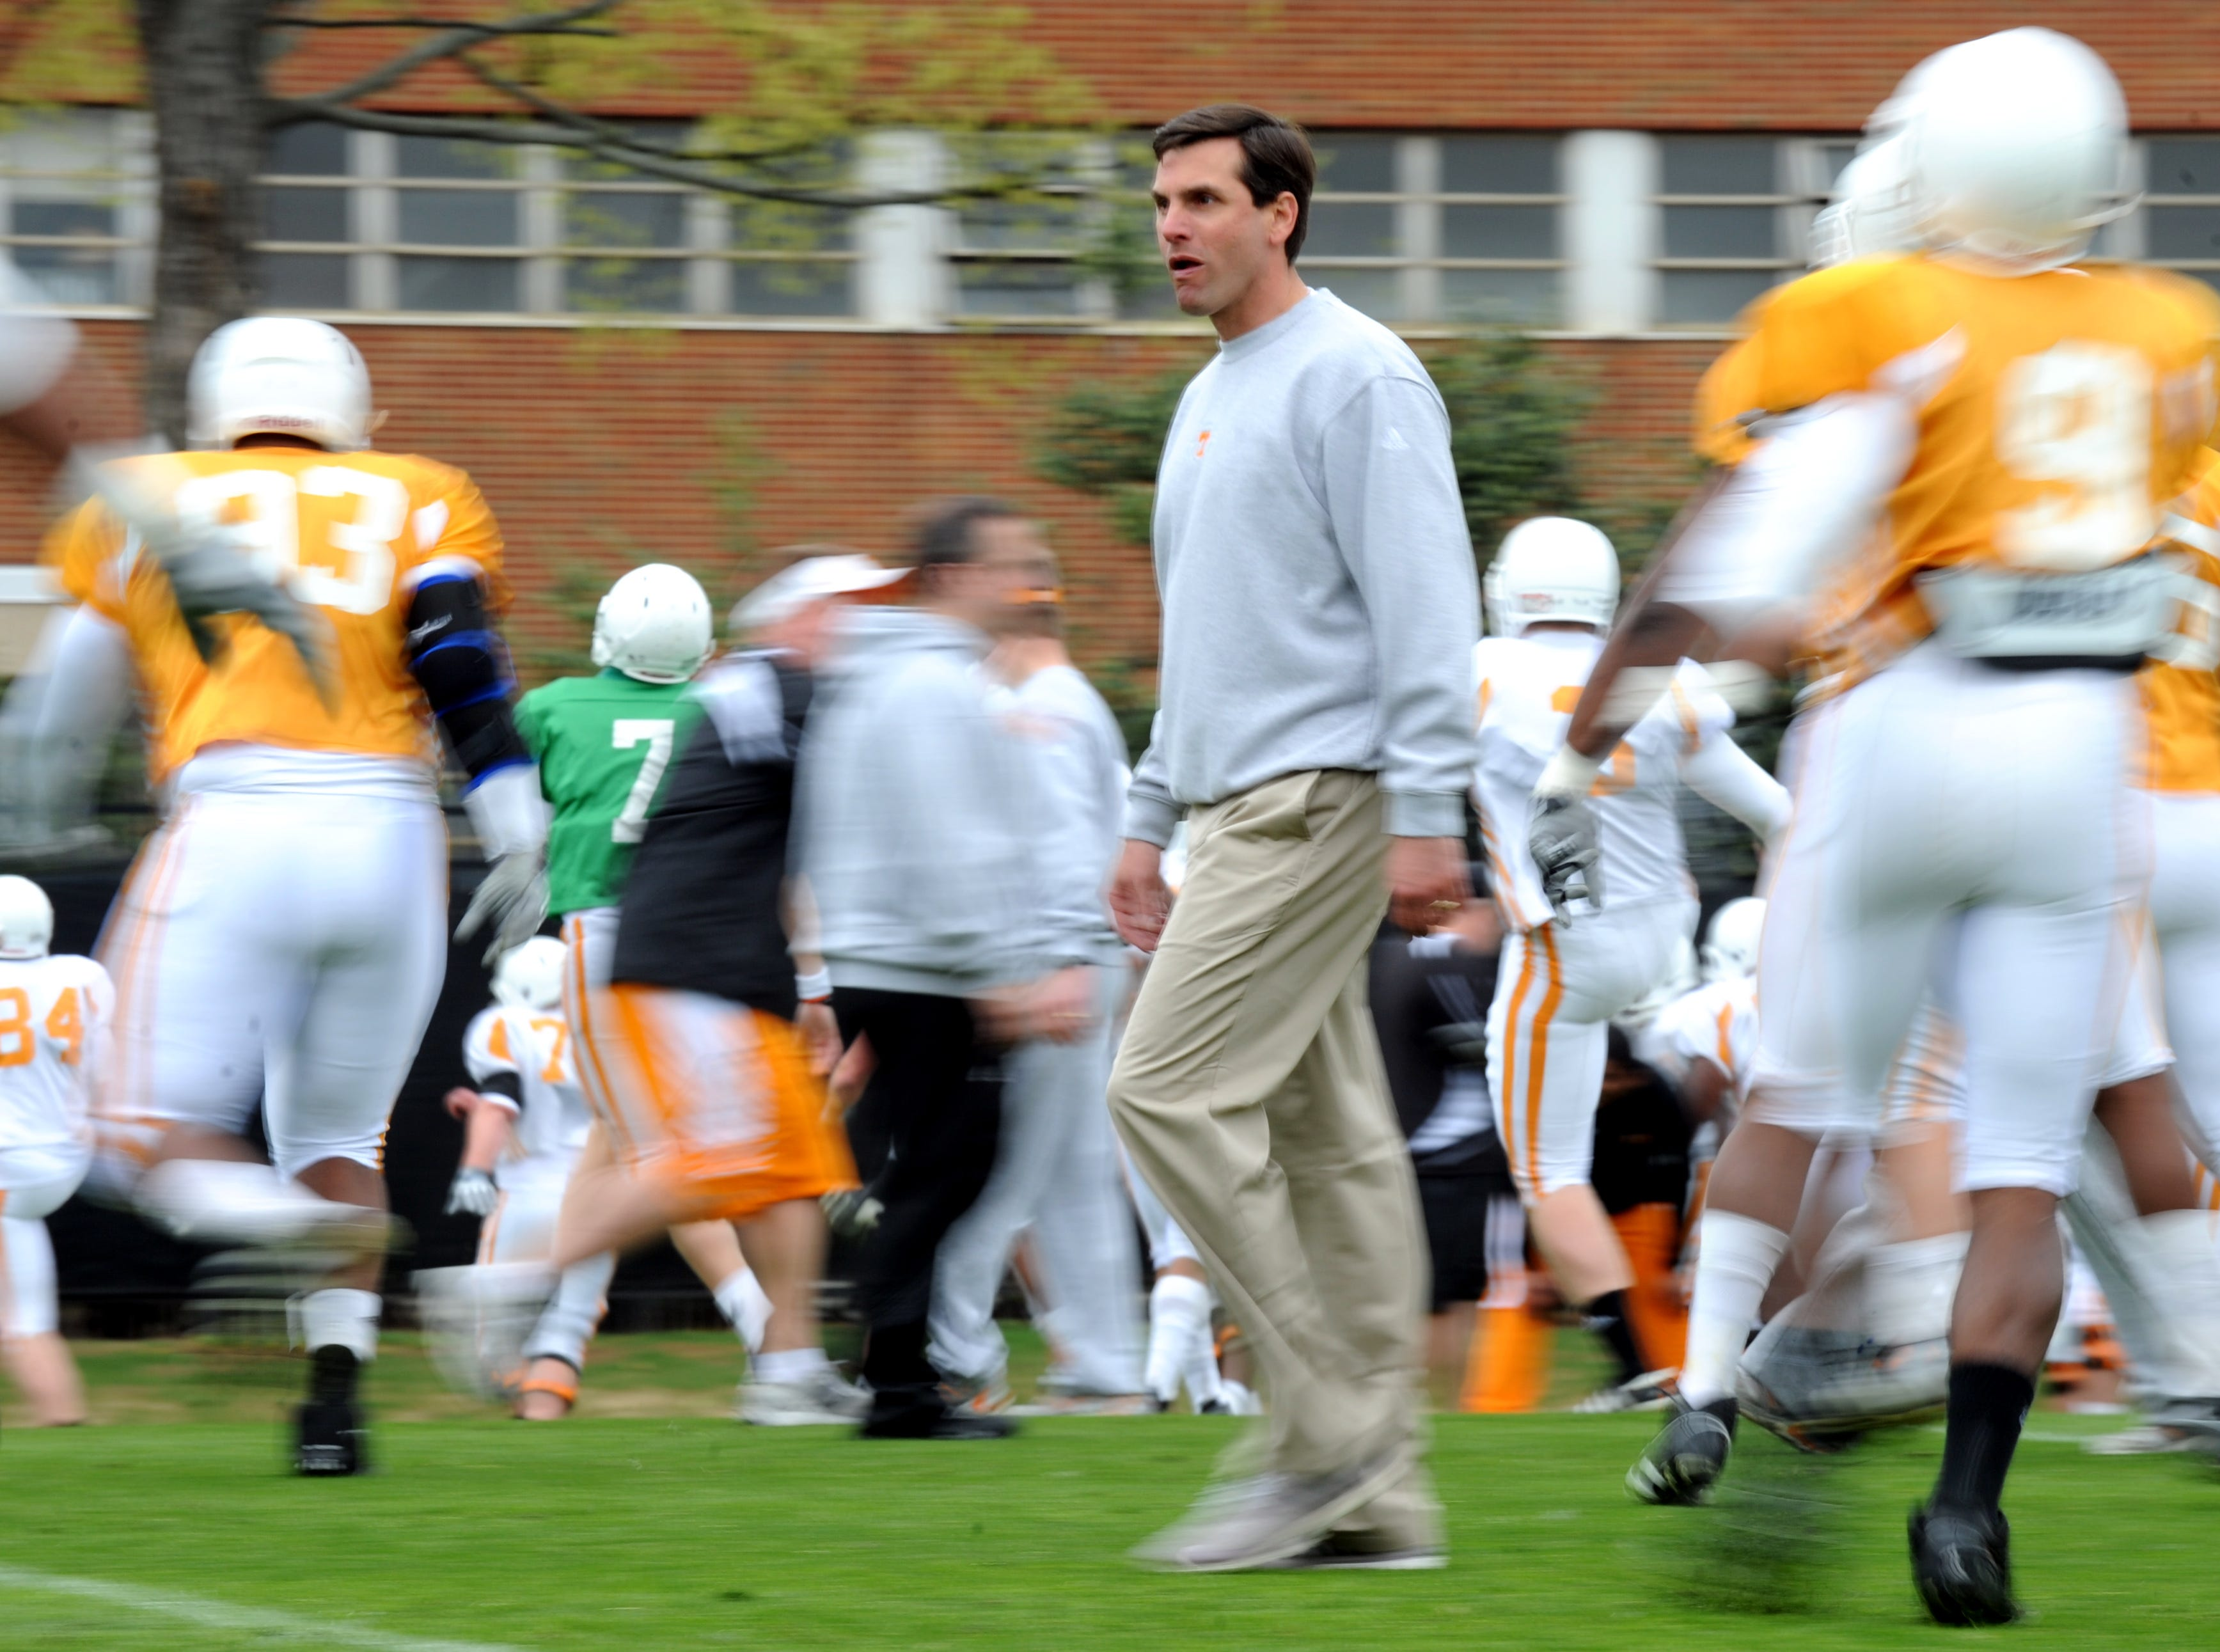 Tennessee head coach Derek Dooley walks across the field as his team warms up during practice at Haslam Field on campus Saturday, March 26, 2011.